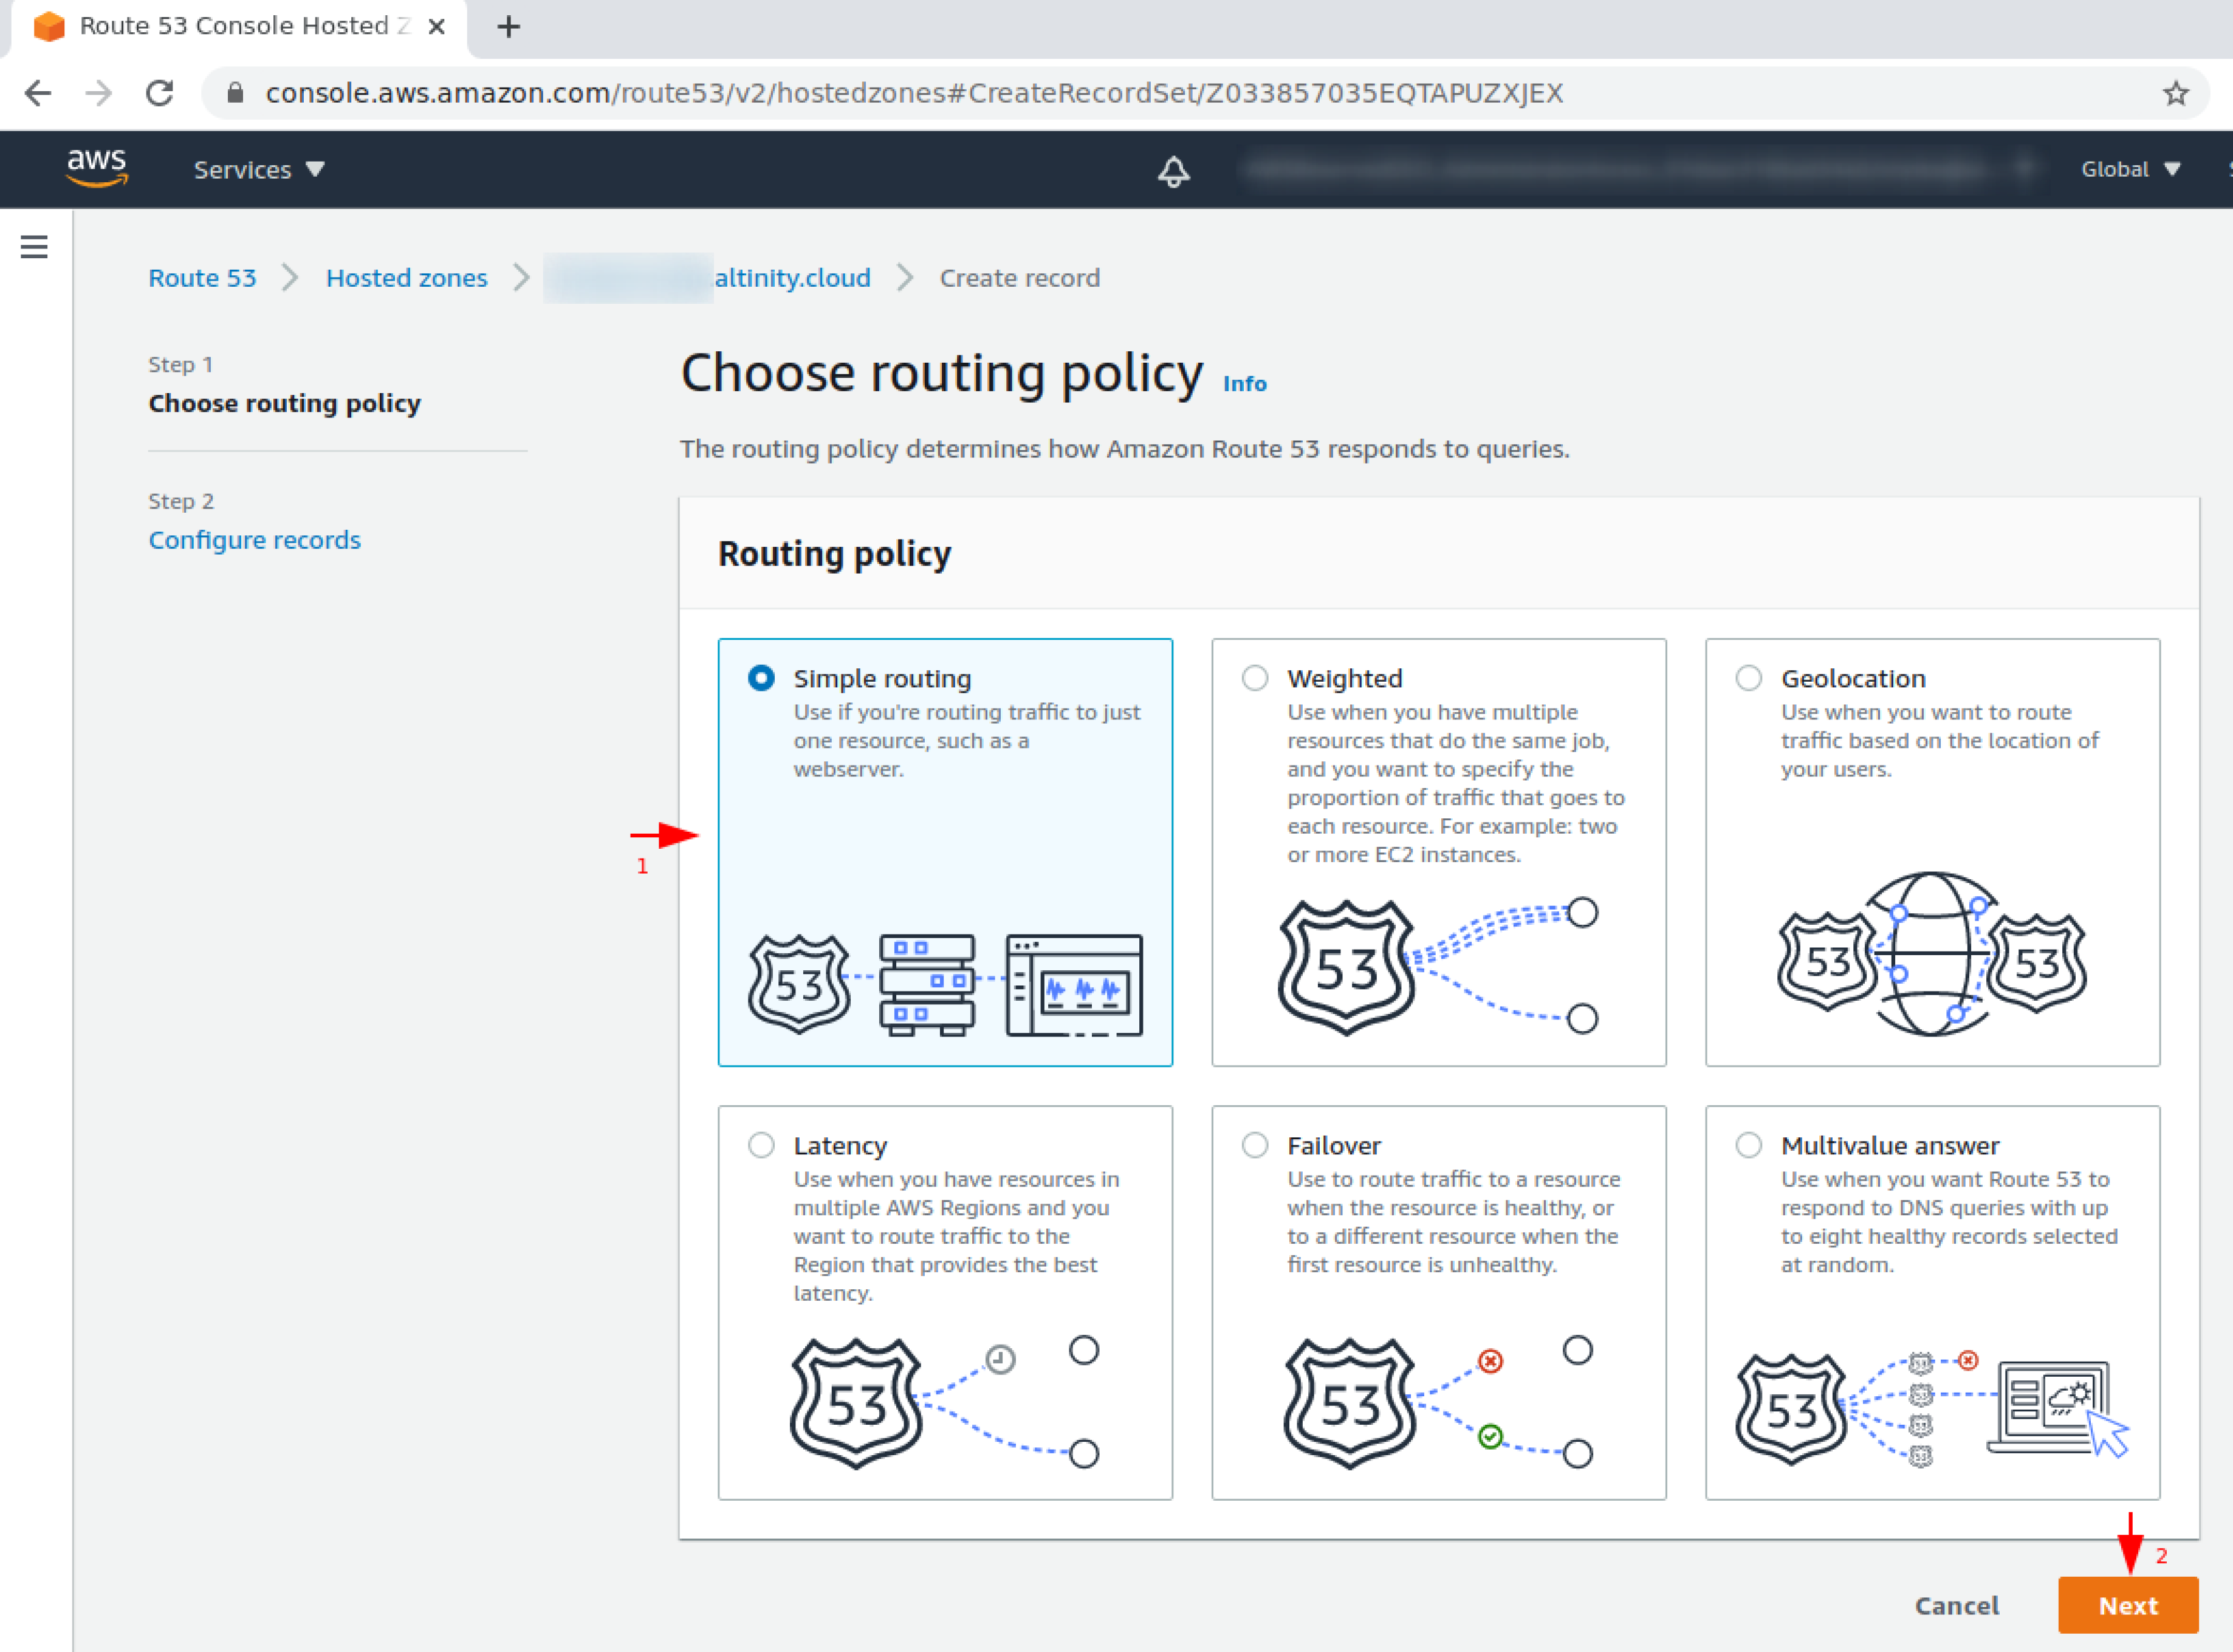 Choose routing policy